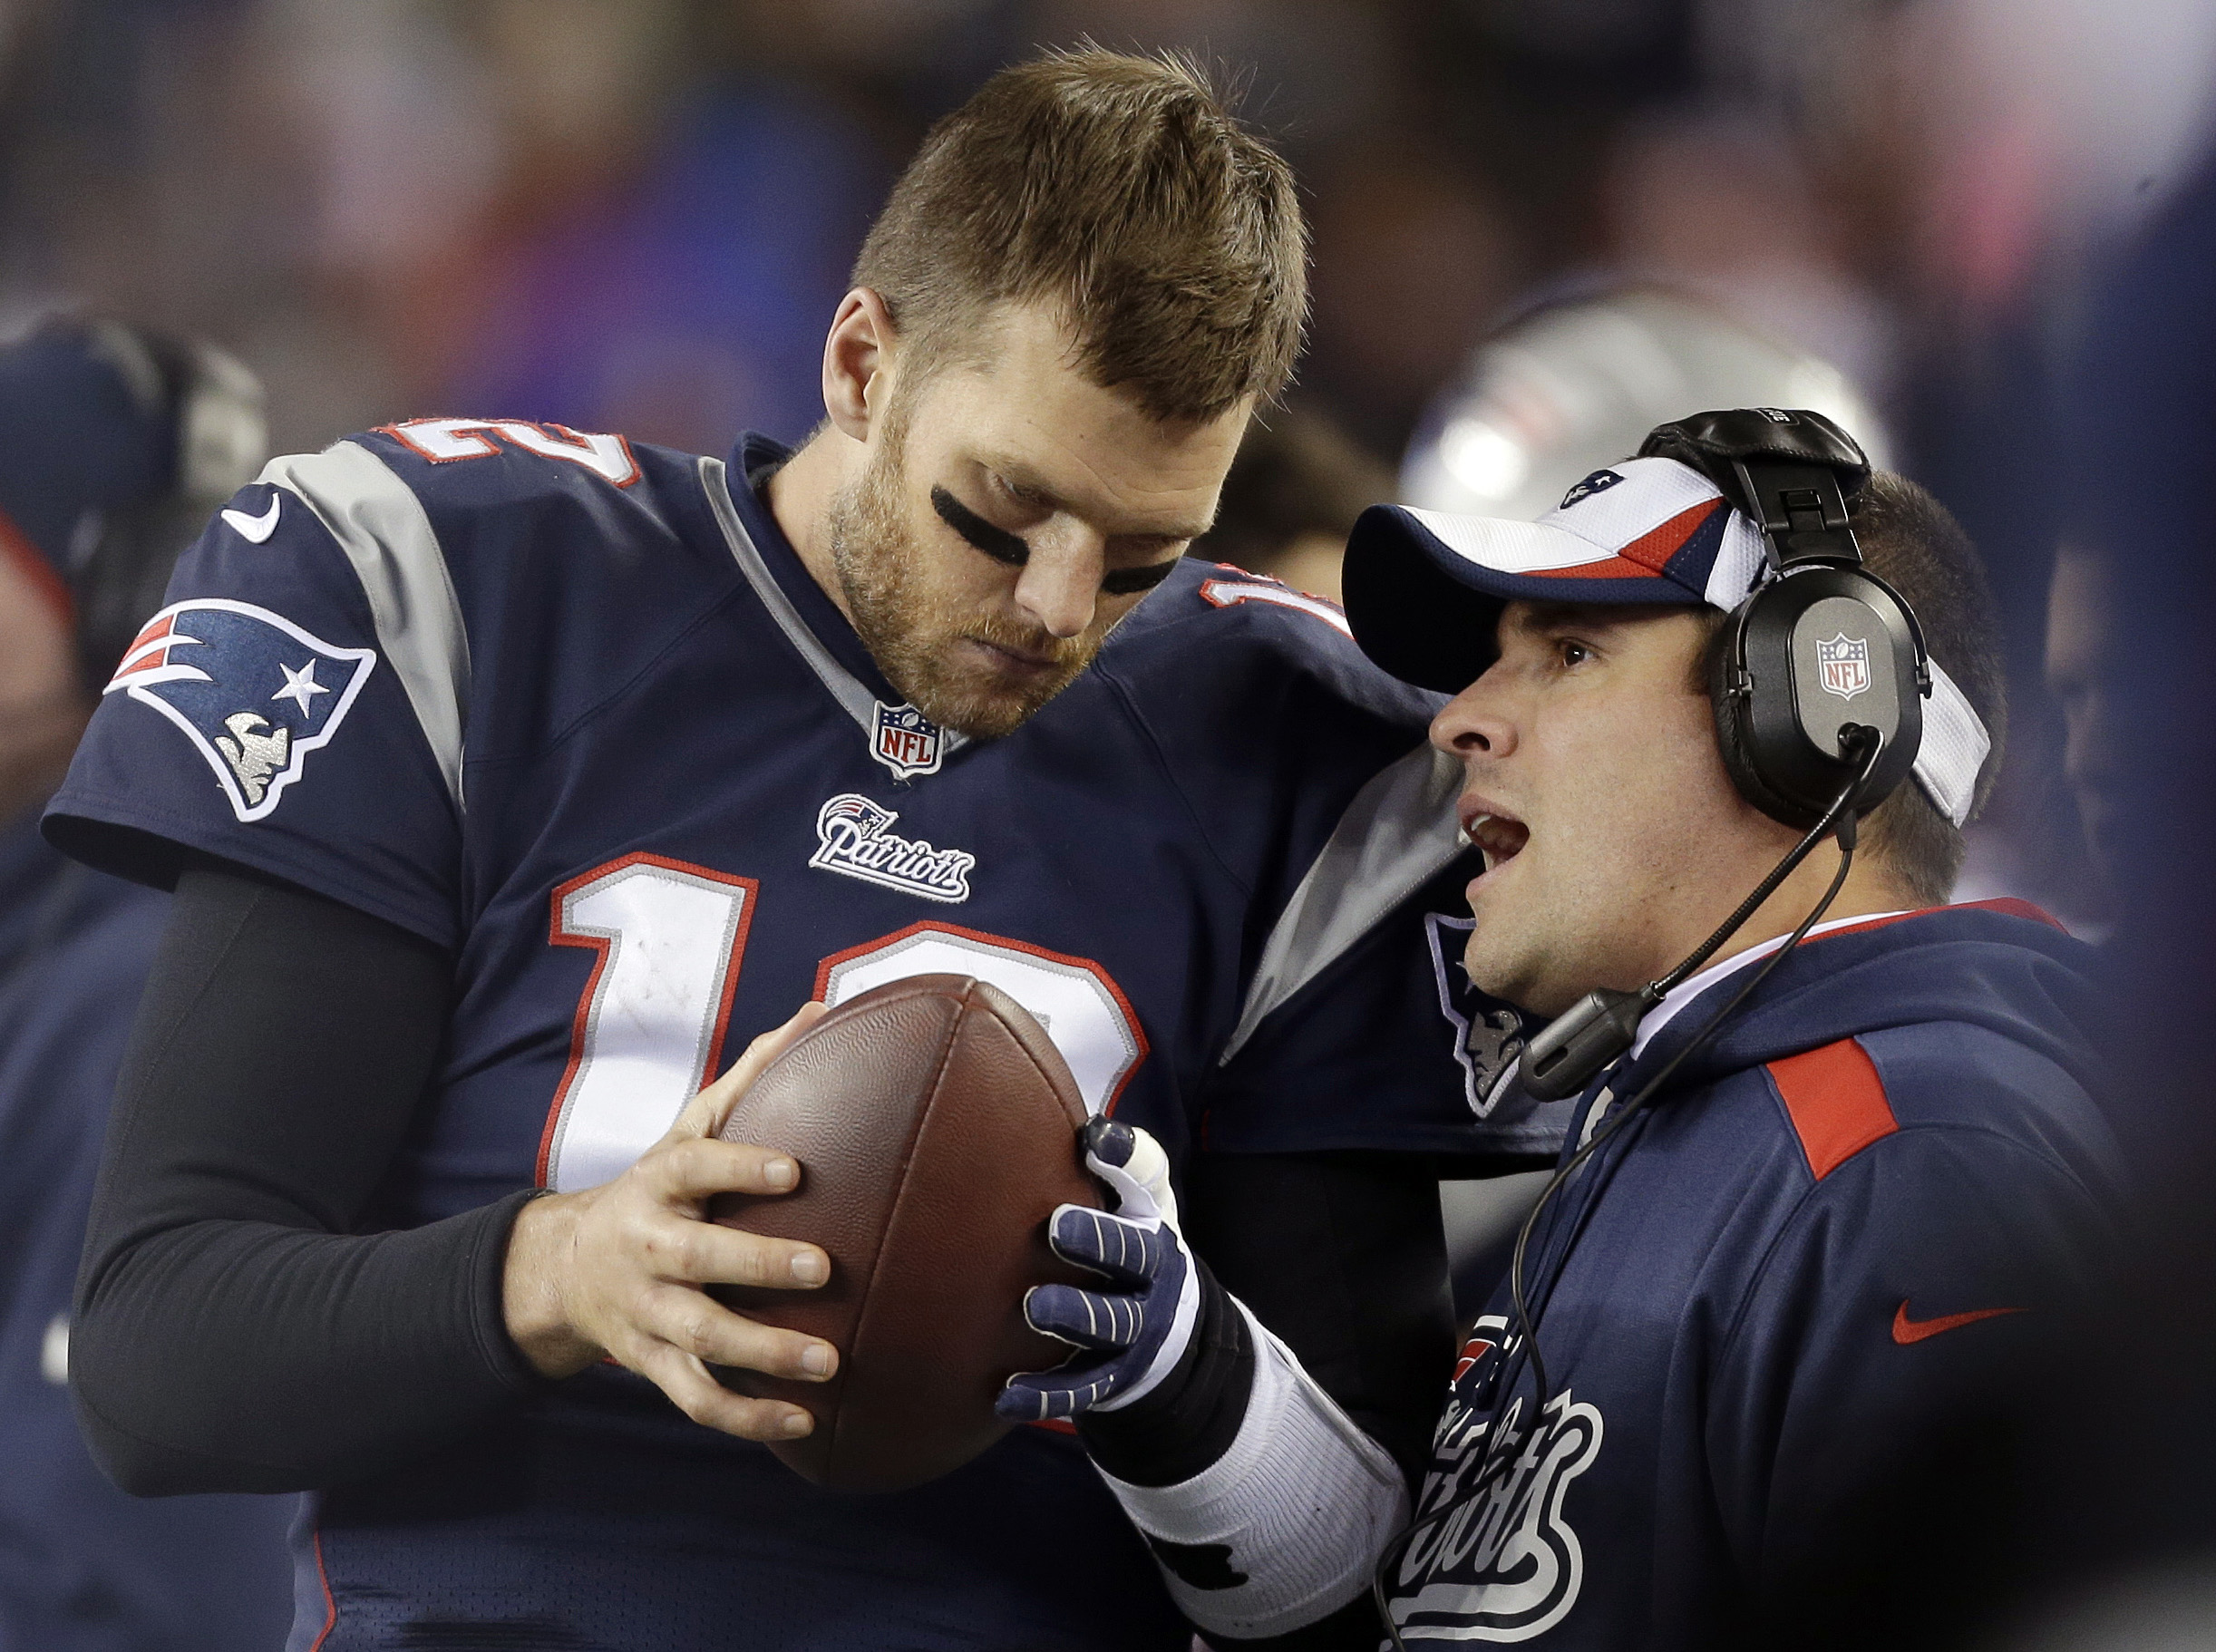 FILE - In this Nov. 3, 2013, file photo, New England Patriots offensive coordinator Josh McDaniels, right, talks to quarterback Tom Brady during the fourth quarter of an NFL football game against the Pittsburgh Steelers in Foxborough, Mass. A federal appe